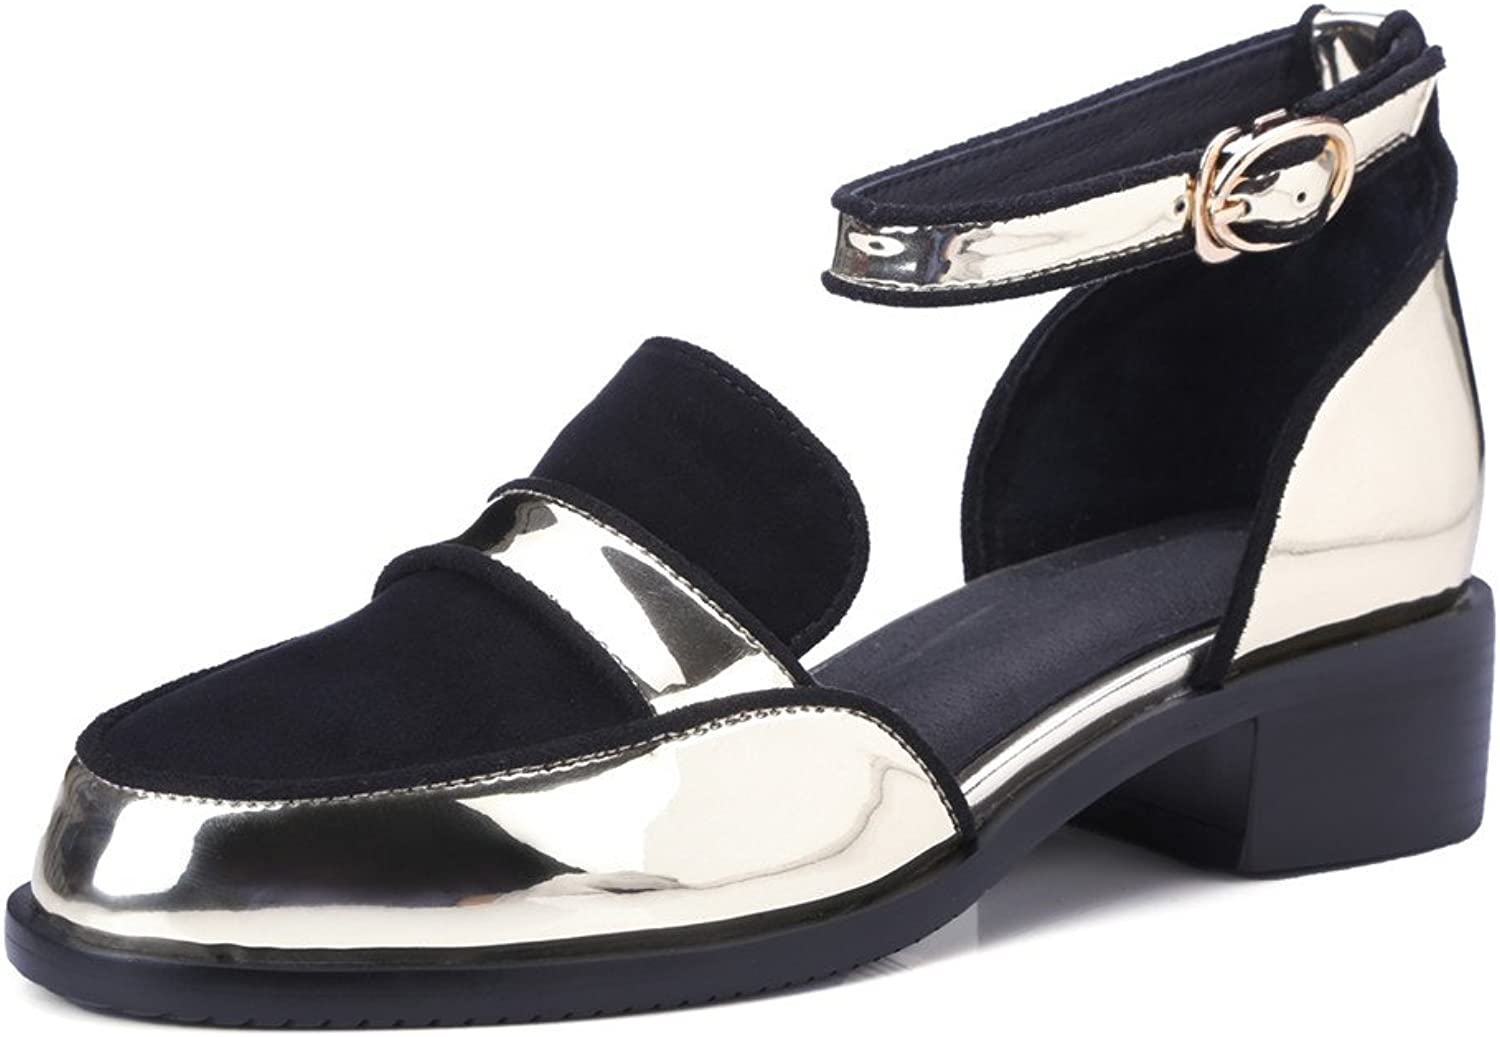 MINIVOG Women's D'Orsay Pump shoes with Ankle-Strap